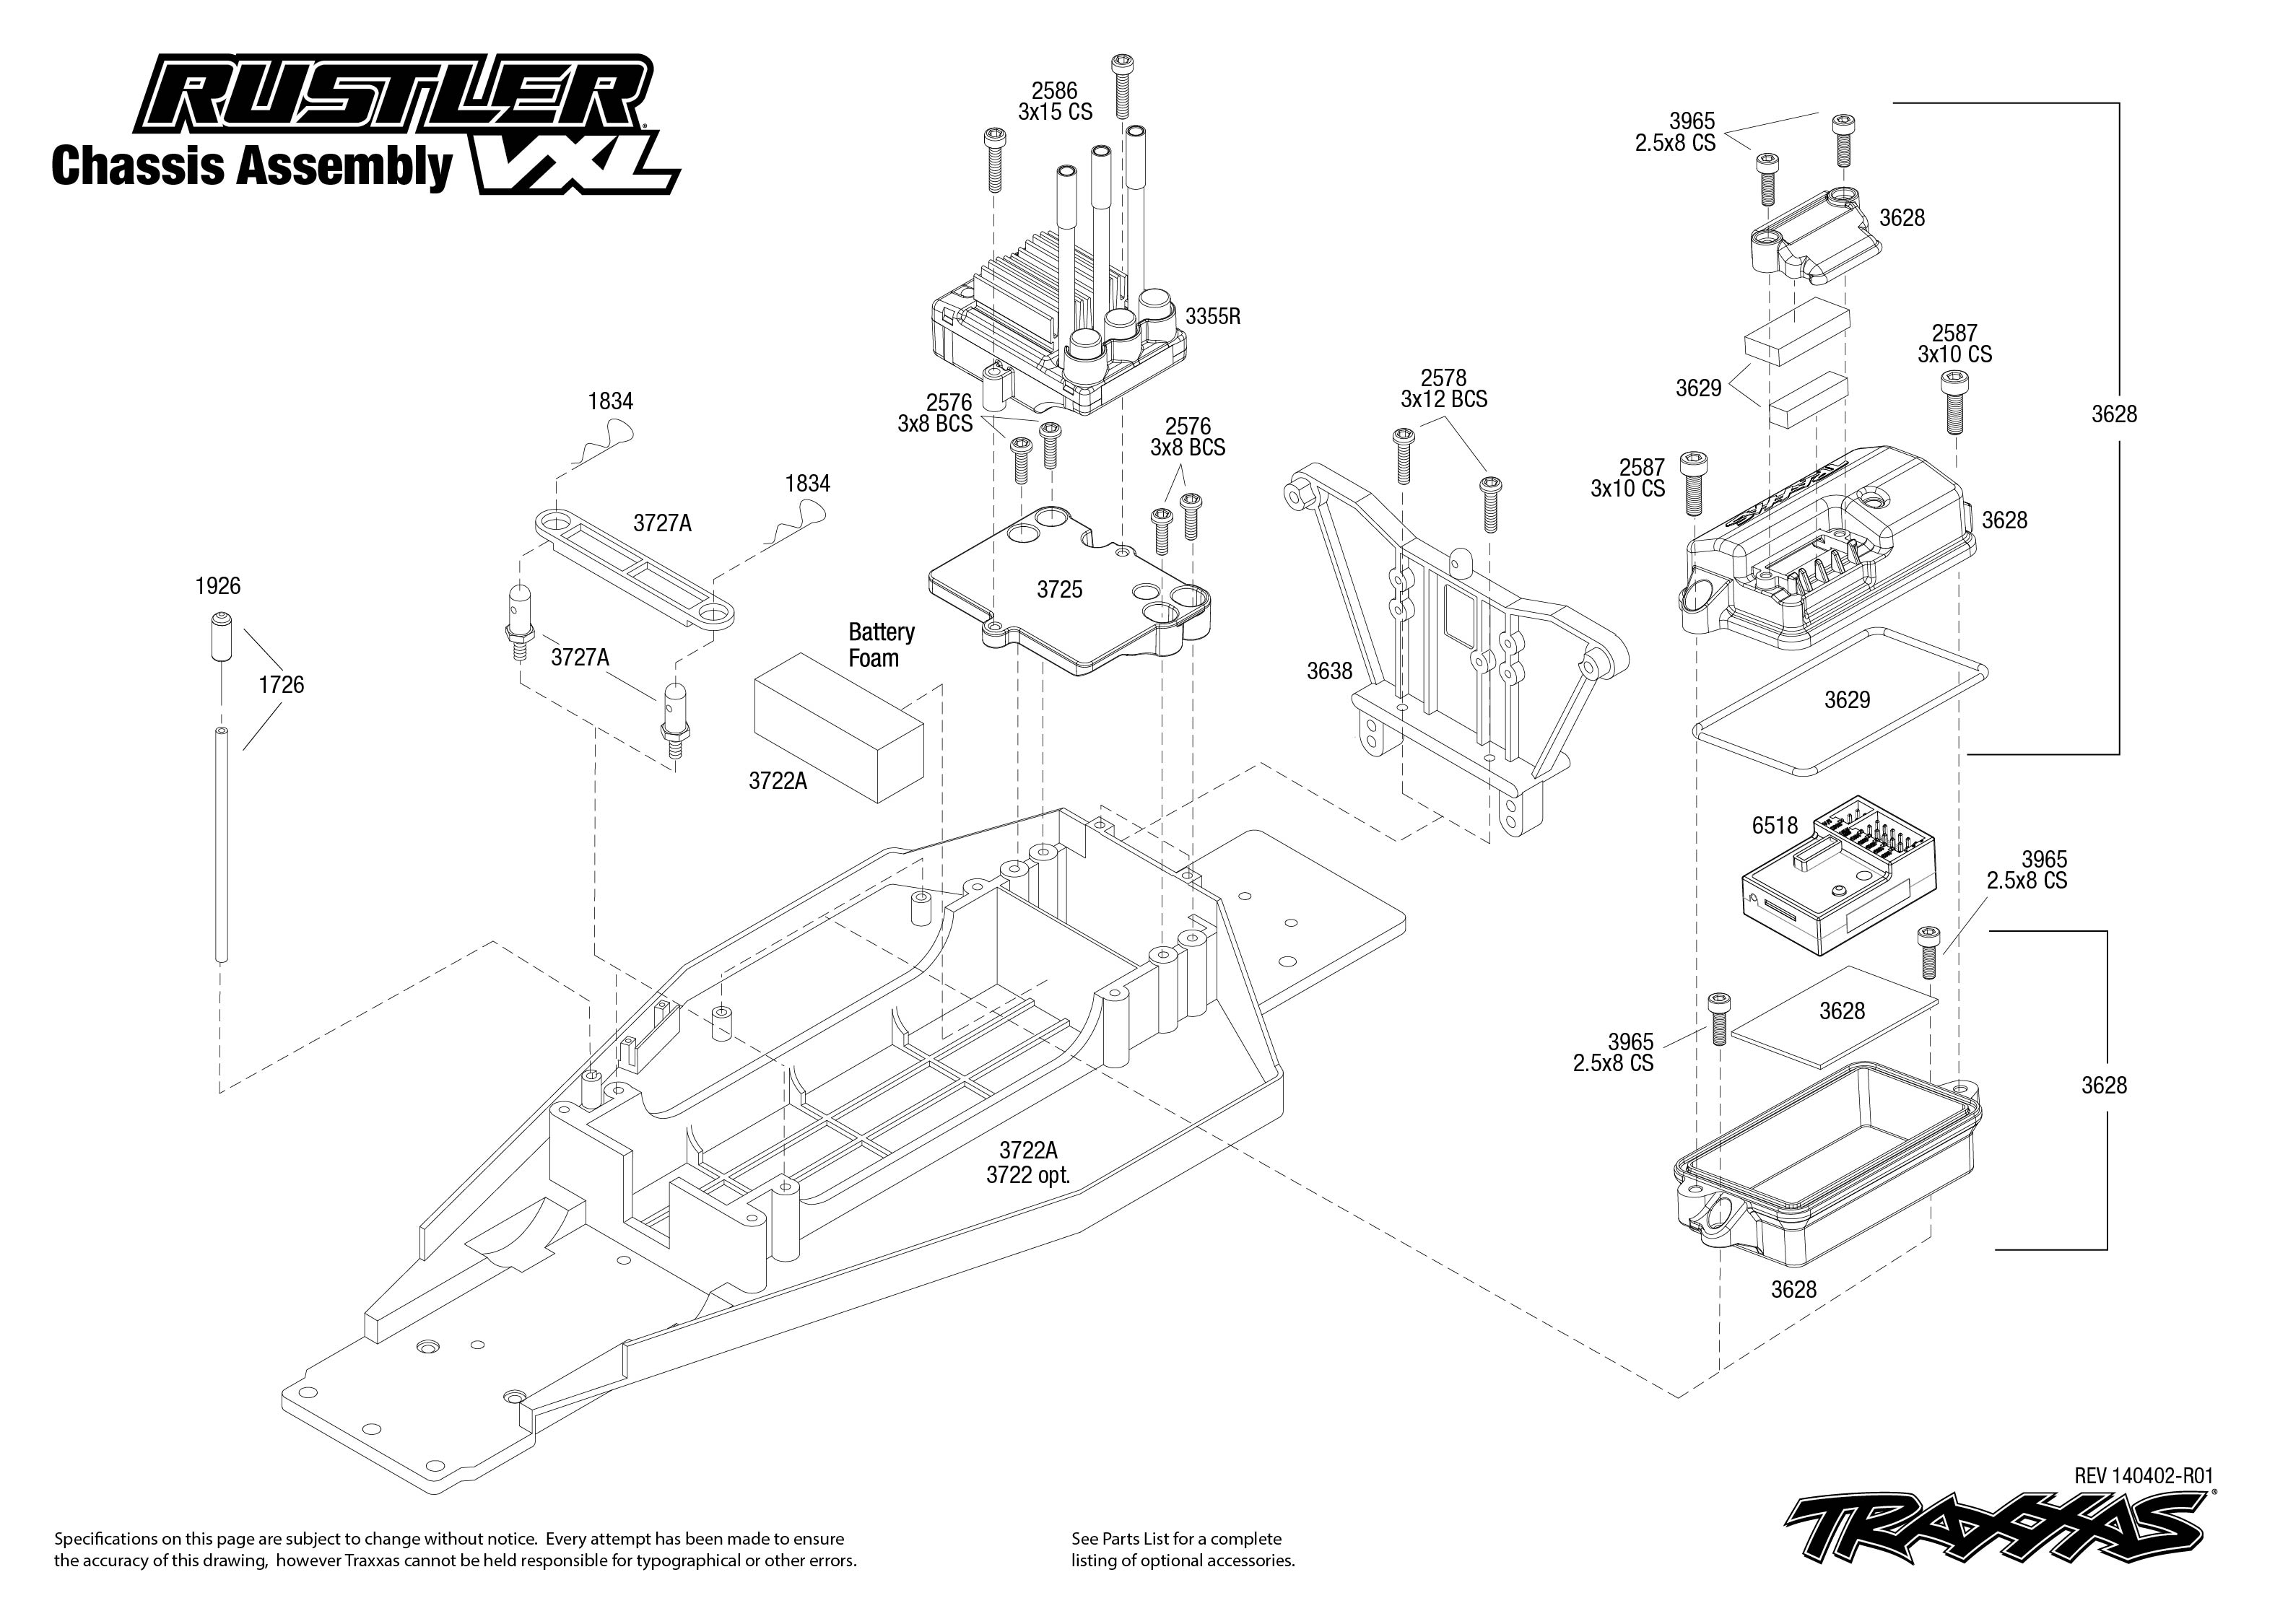 Rustler Vxl Chassis Assembly